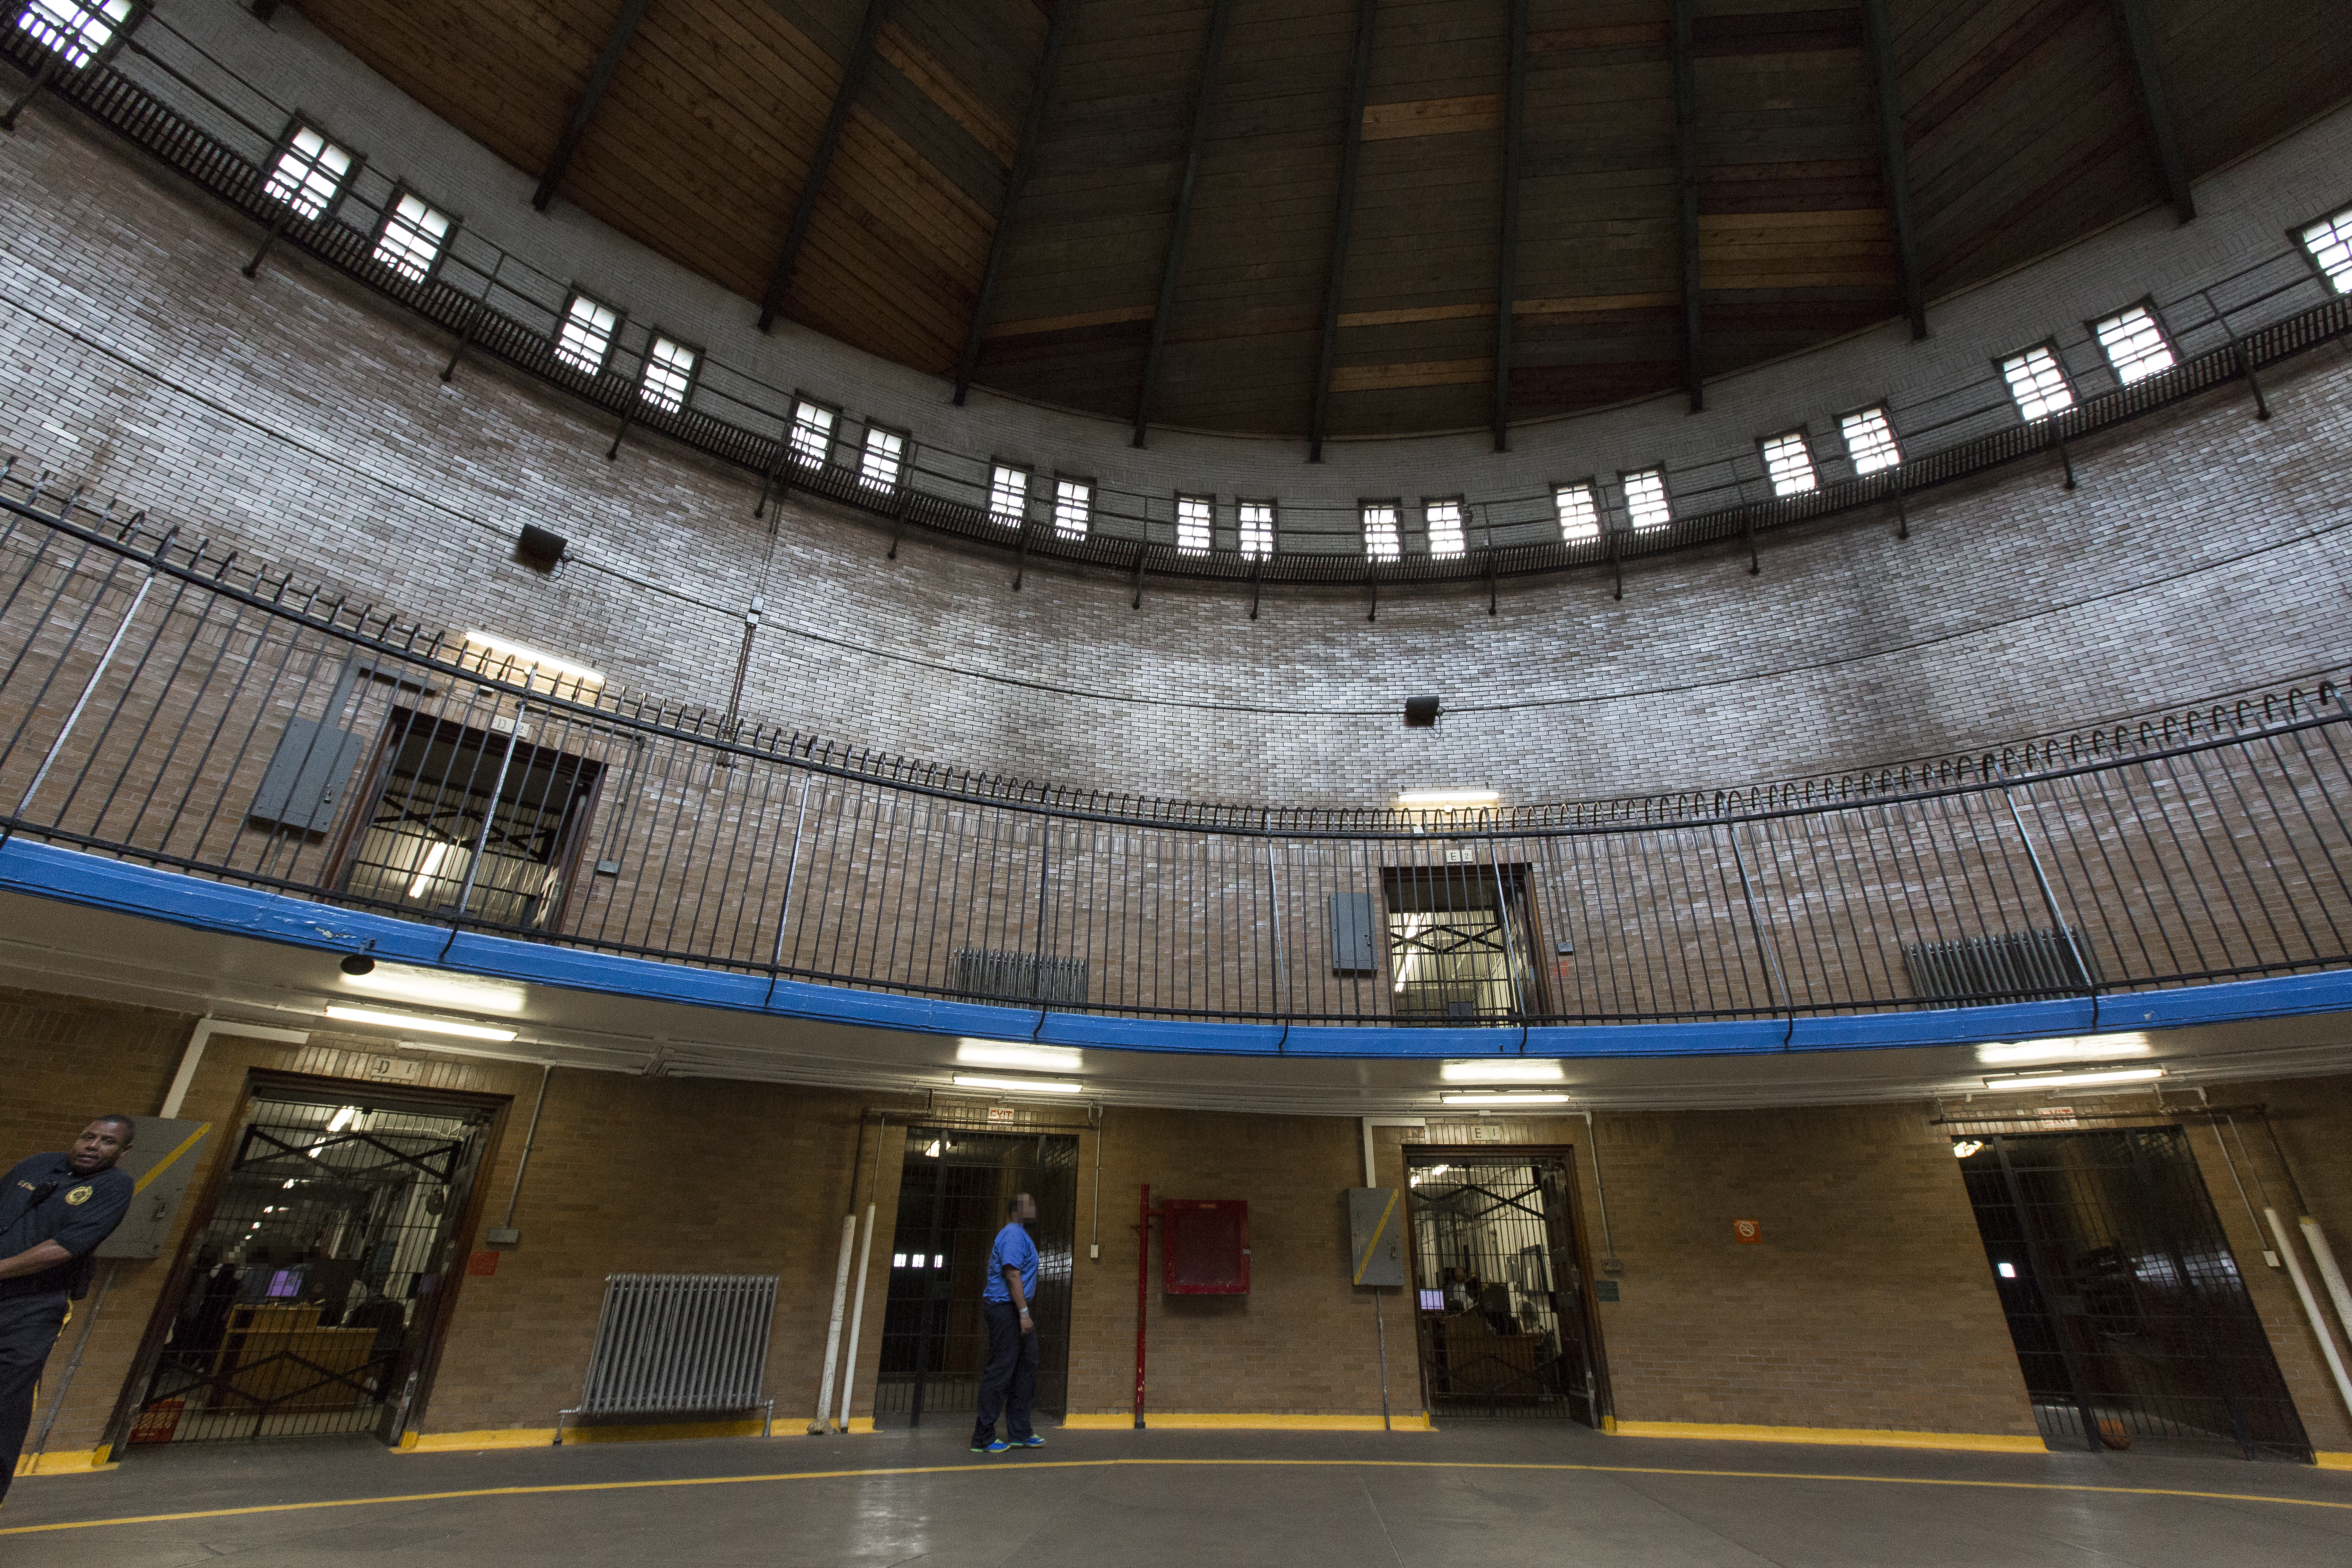 One of two main rotundas in the House of Corrections, which was shut down in 2018